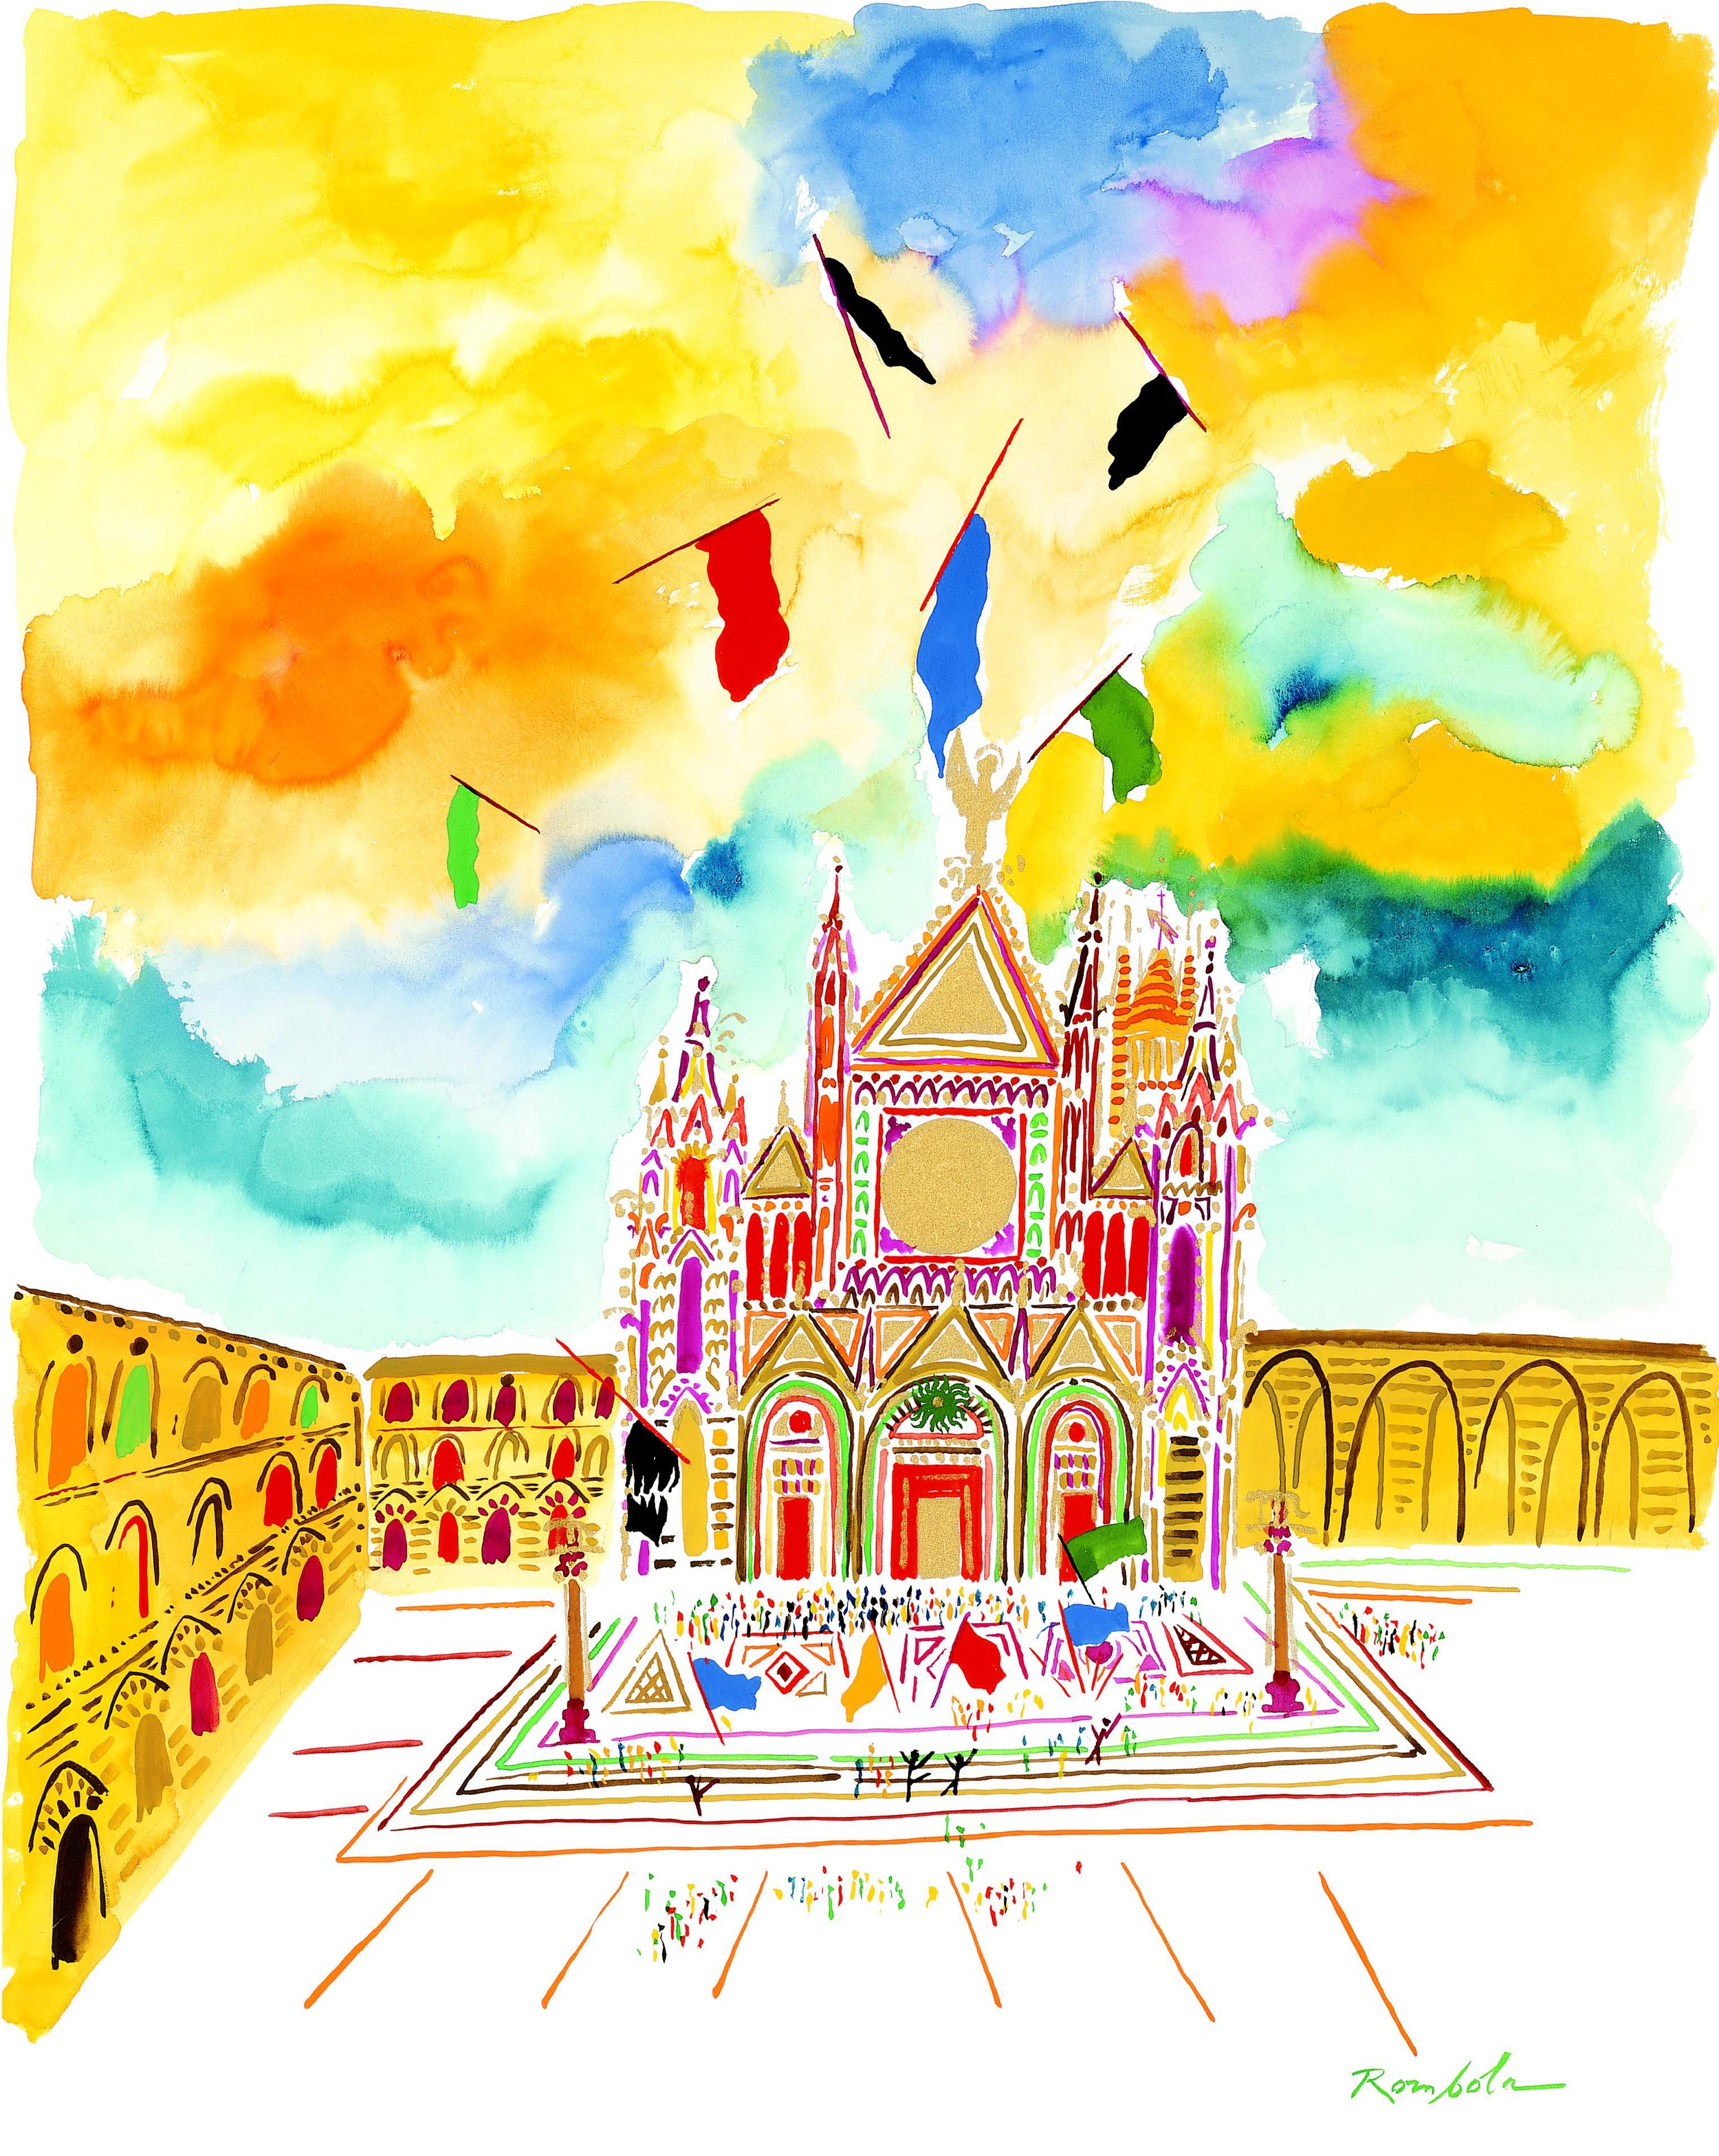 Piazza del Duomo    1991 Gouache on paper. Published in Town & Country, 1991, and Portfolio, 1991